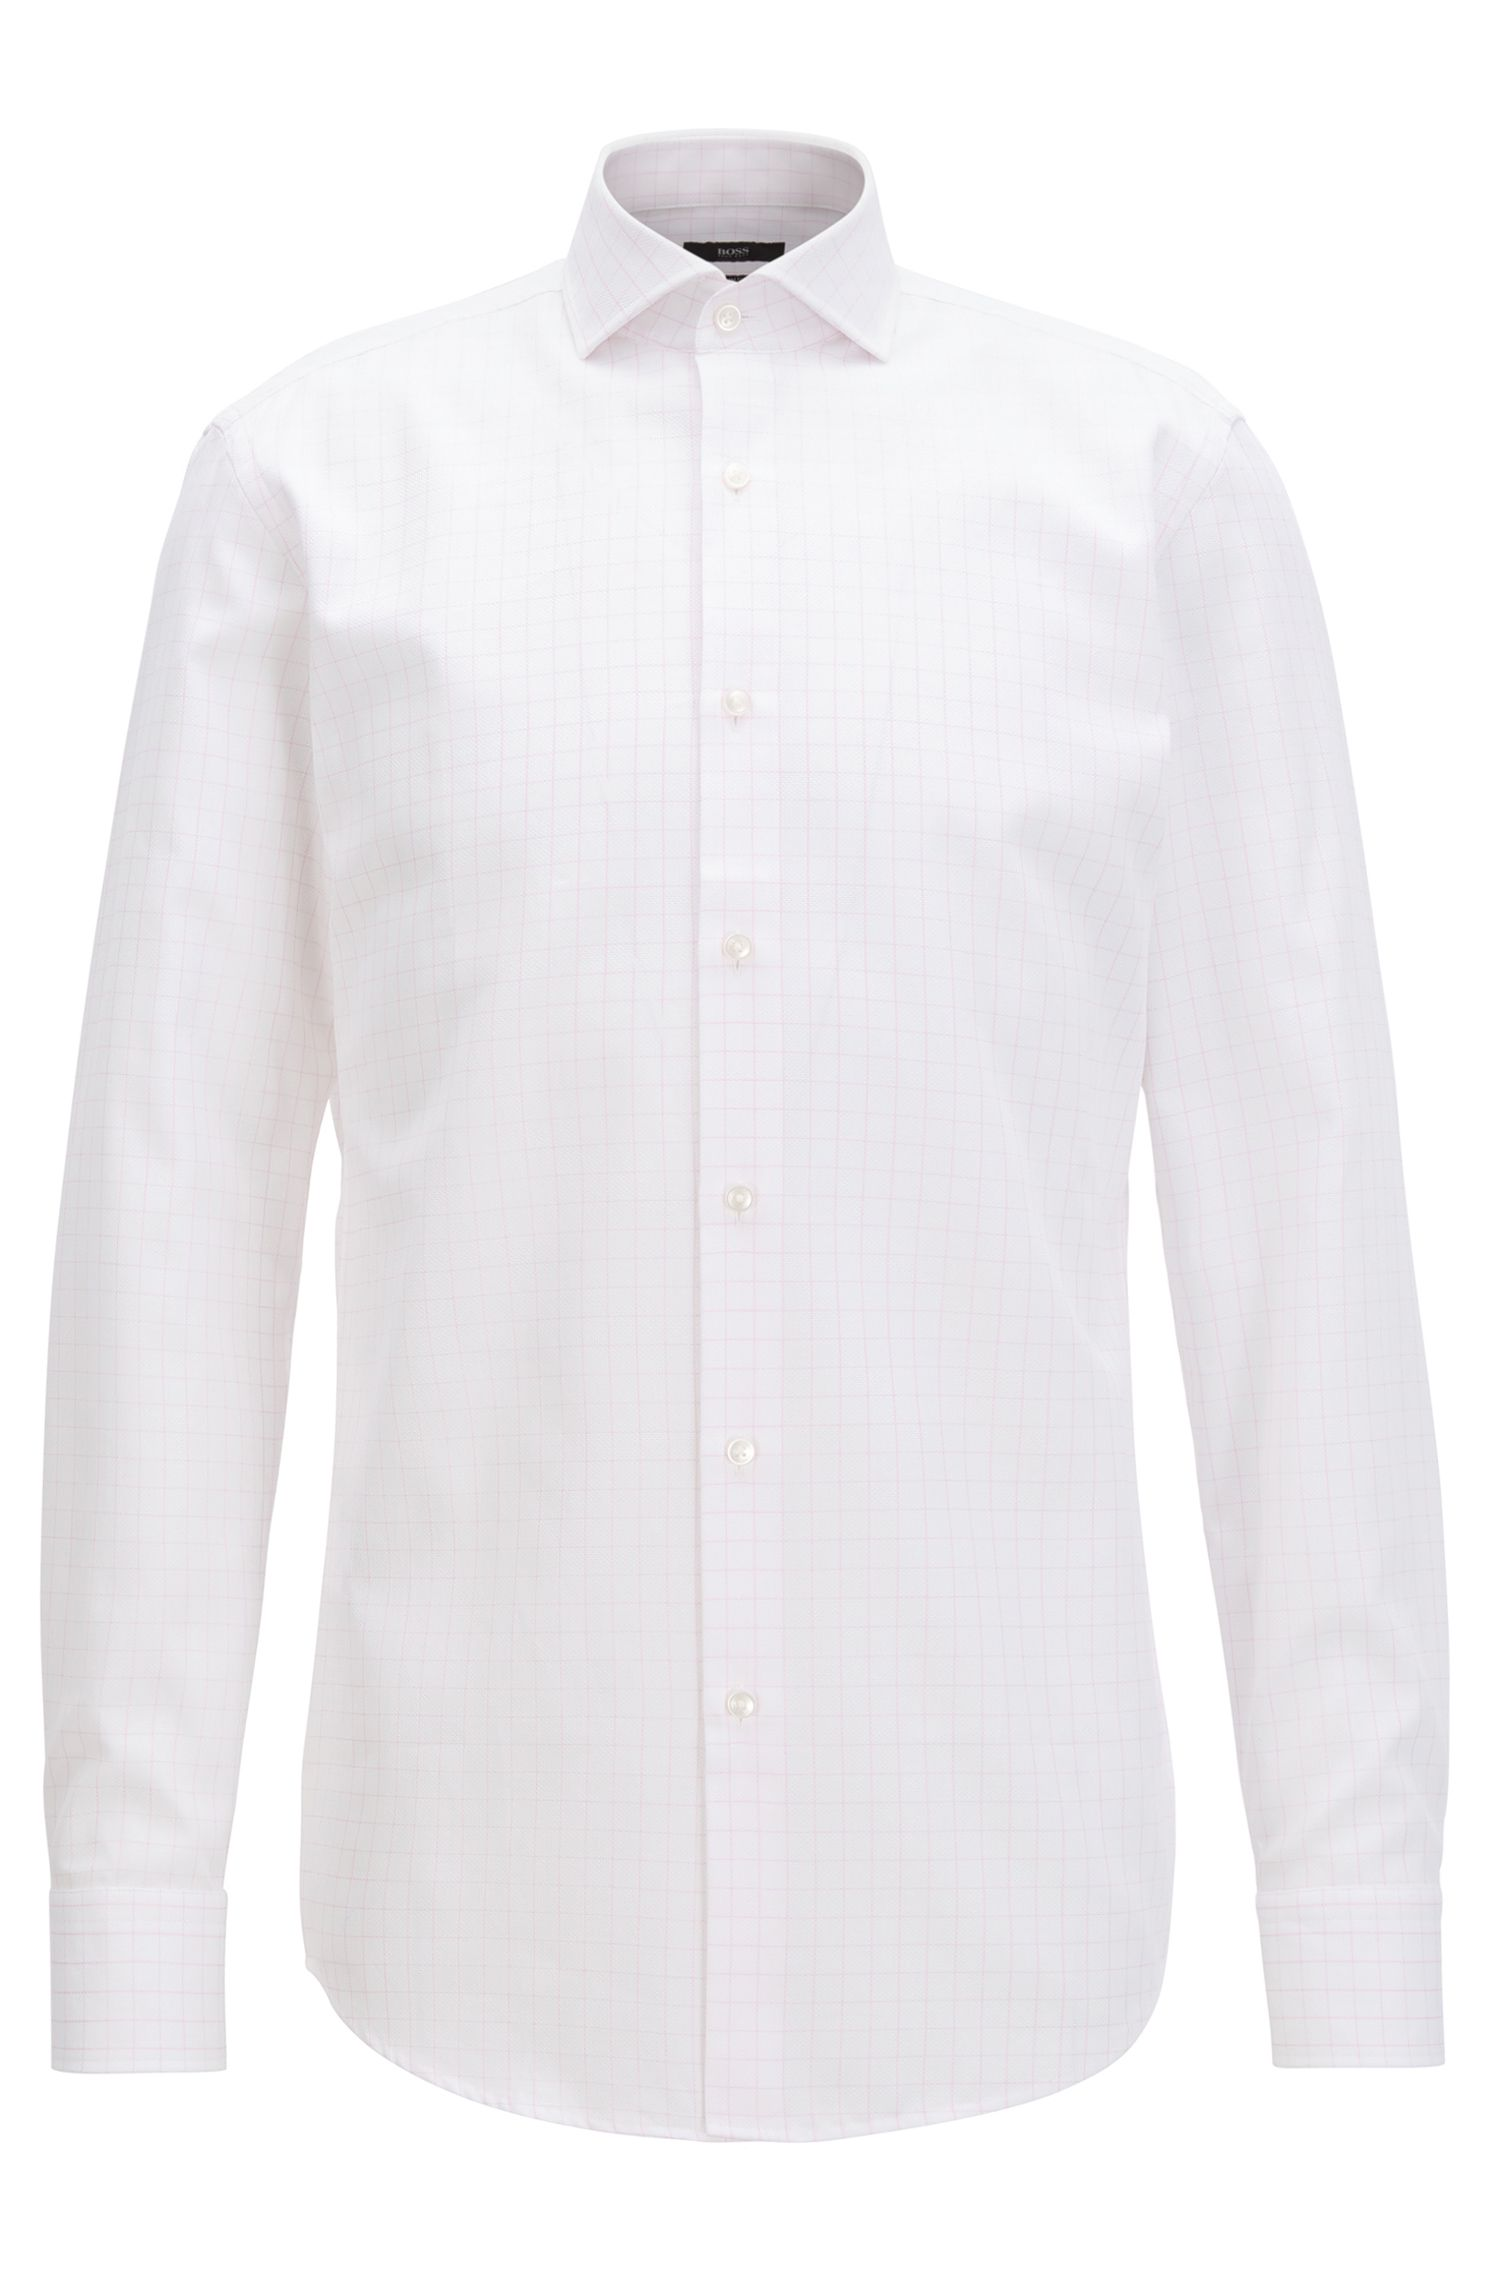 Piqué-cotton shirt in a slim fit